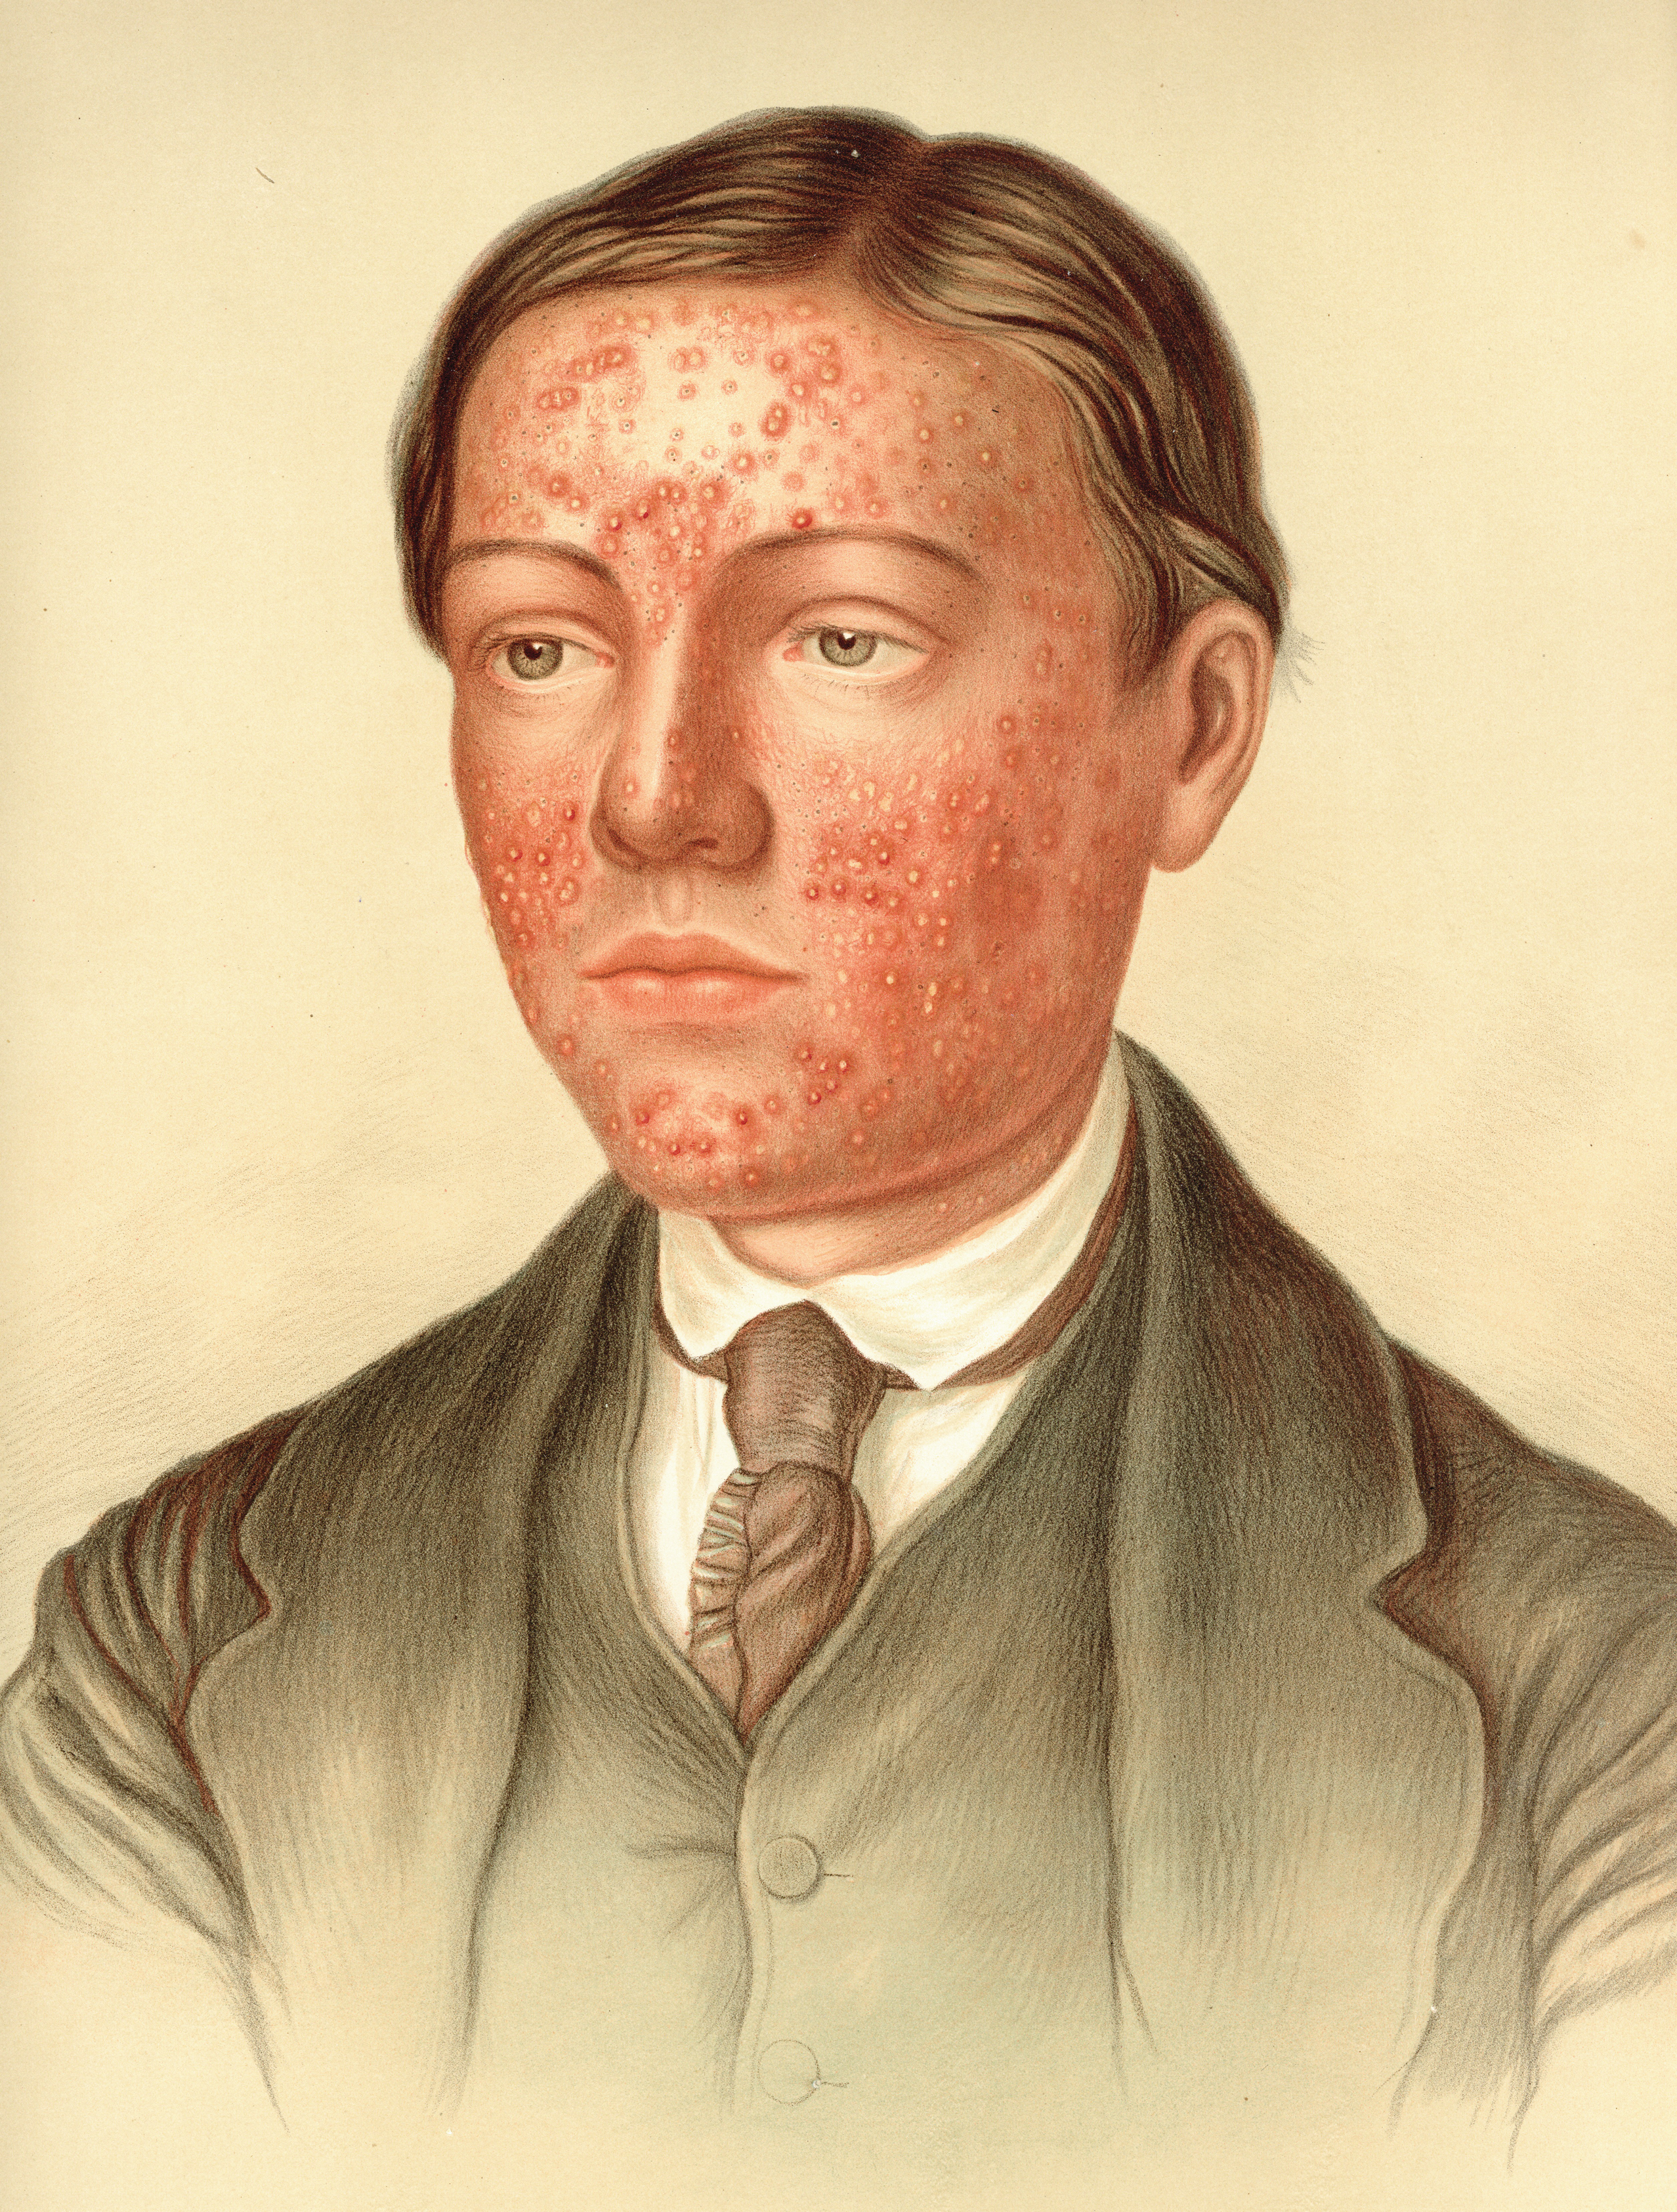 History of Acne and Rosacea | SpringerLink